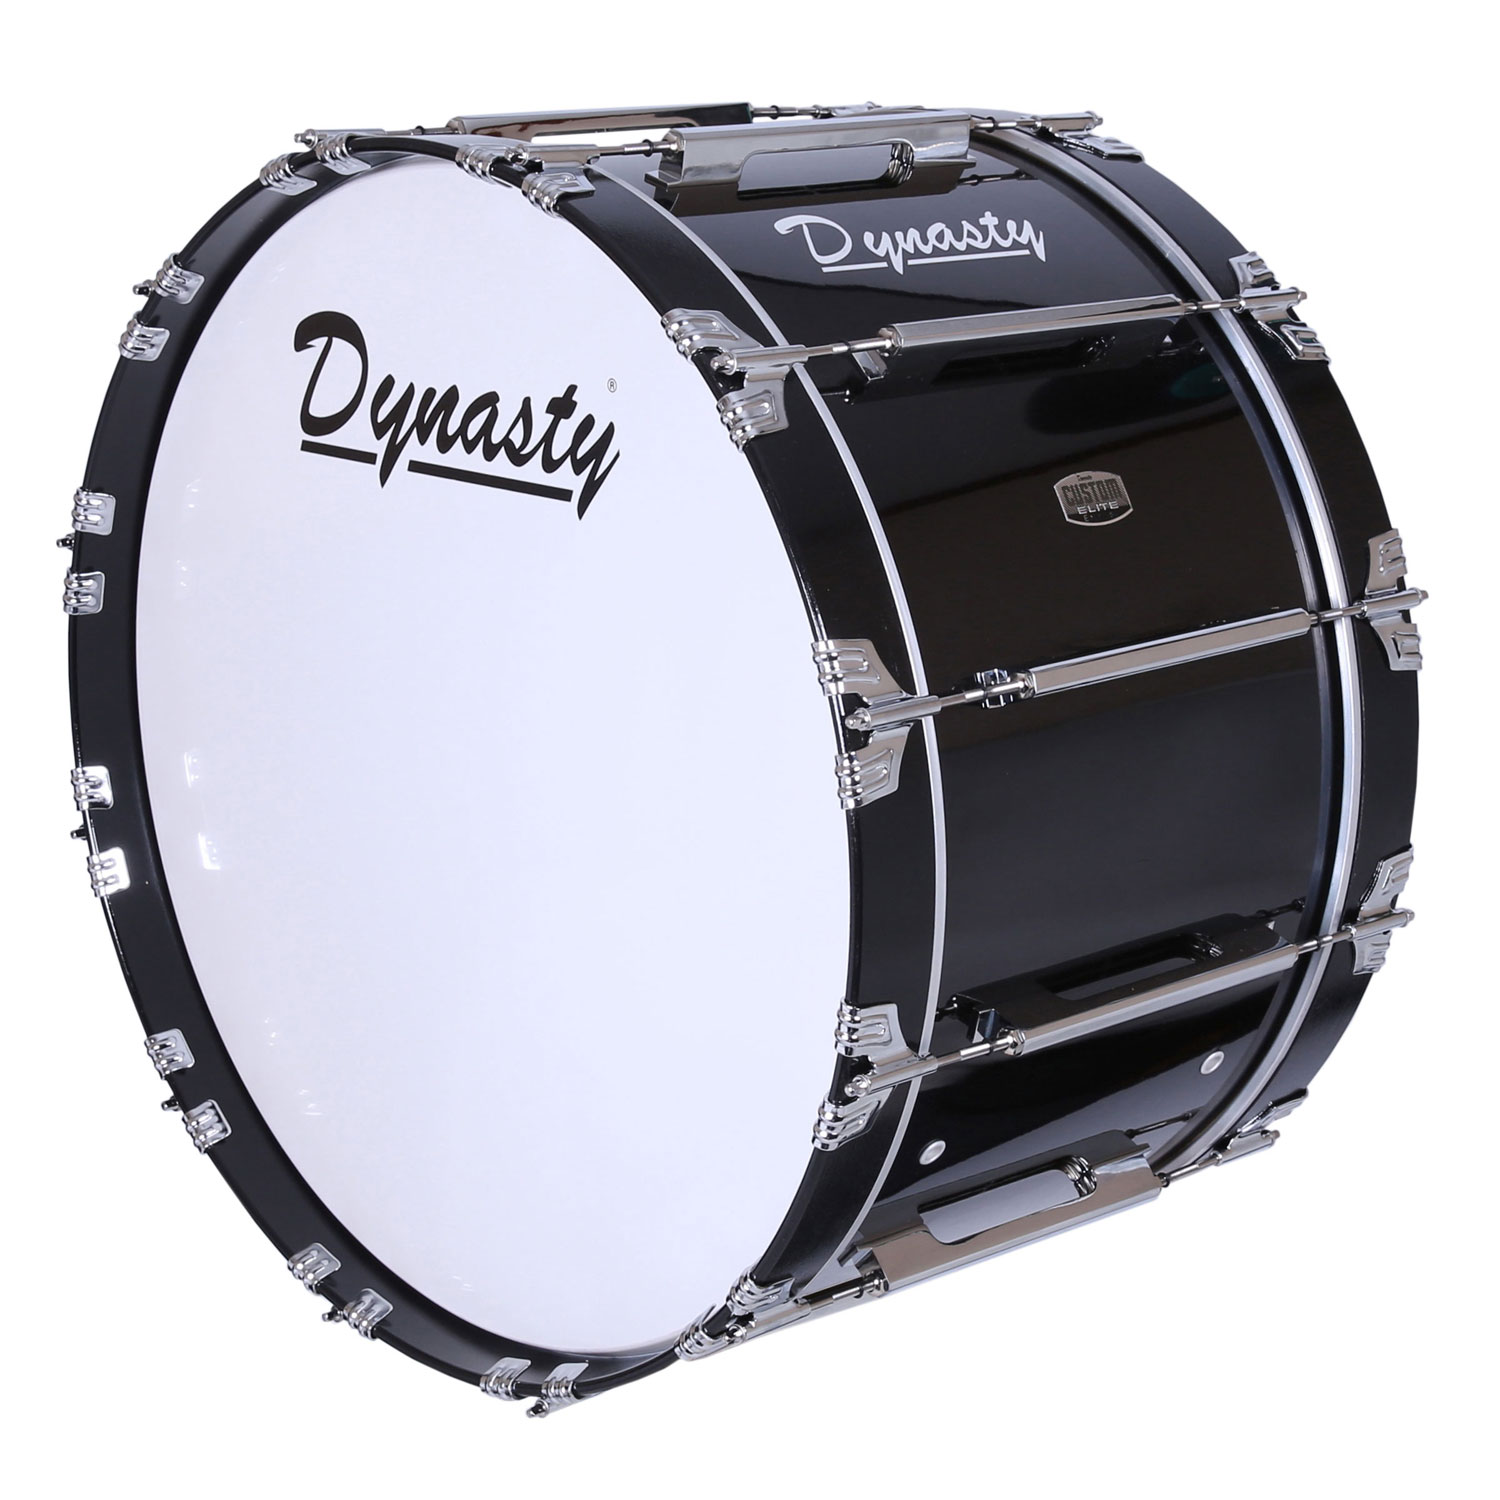 "Dynasty 24"" Custom Elite Marching Bass Drum in Black/Chrome"